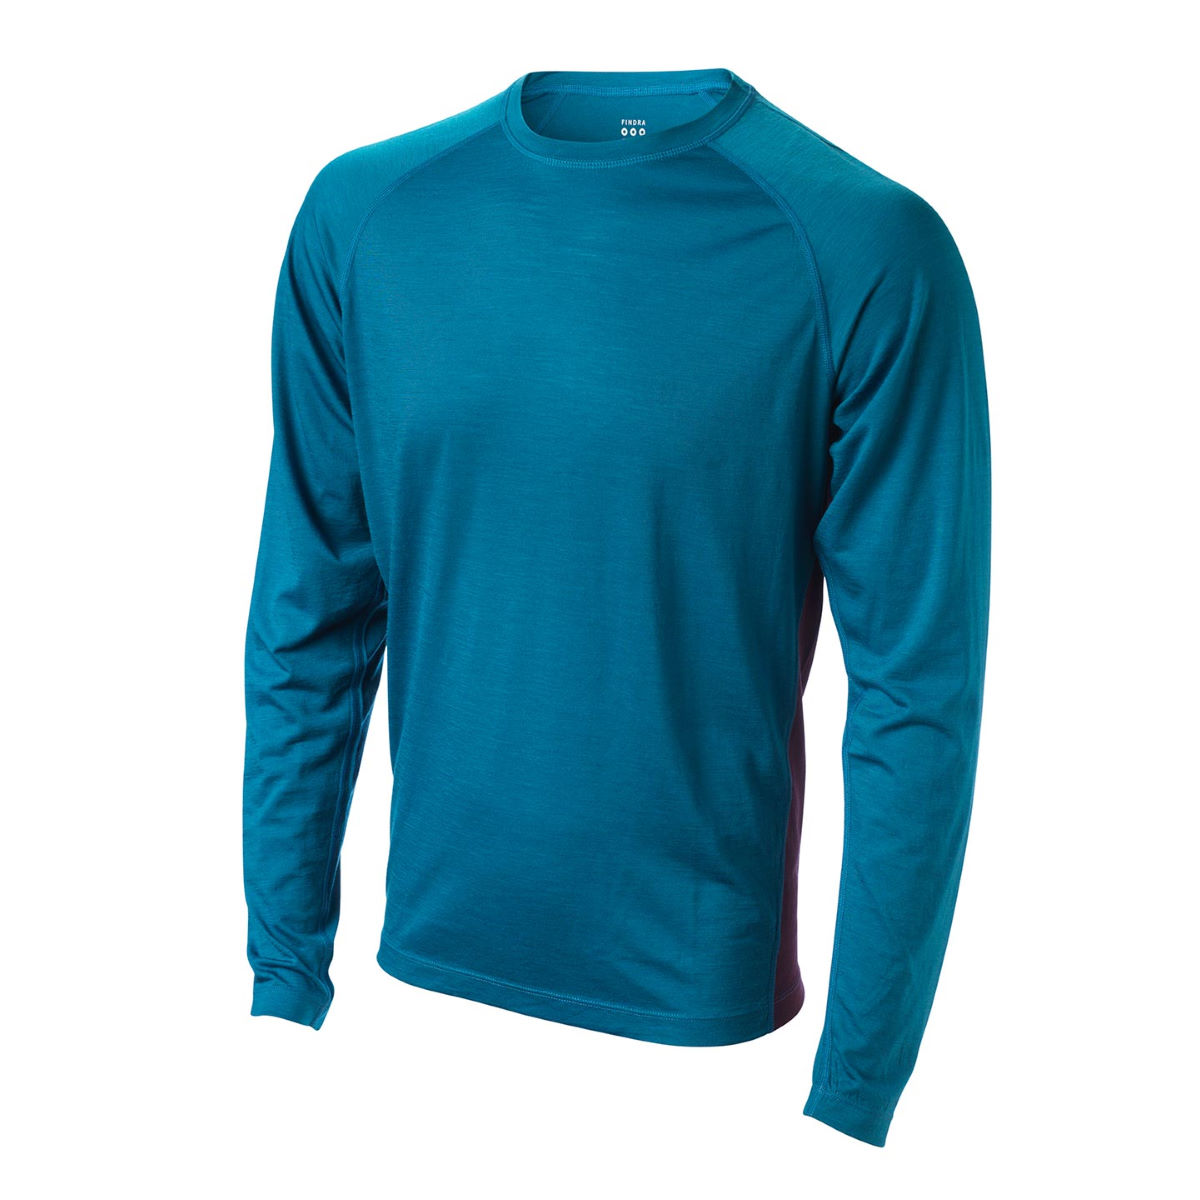 FINDRA Arran Merino Enduro Long Sleeve Top - Maillots